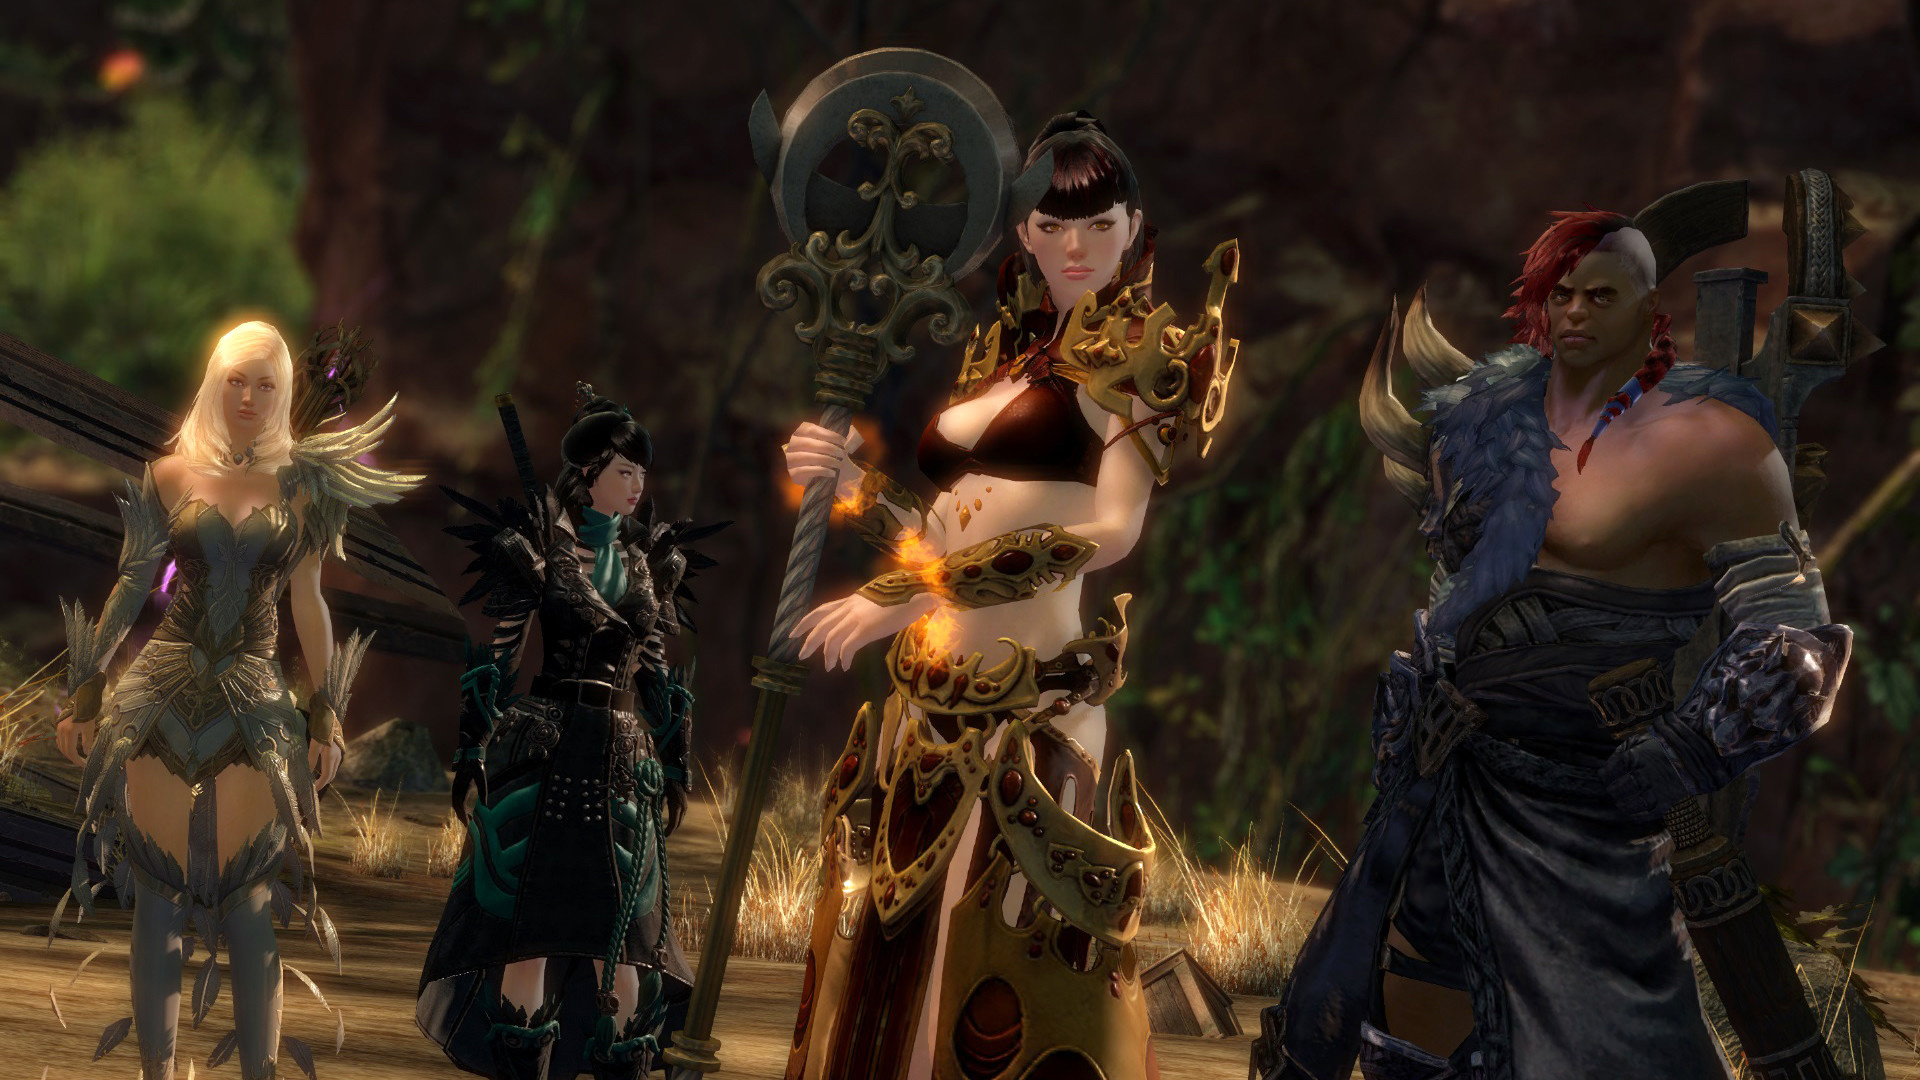 Guild Wars 2 will be playable on Steam in November but accounts won't transfer screenshot